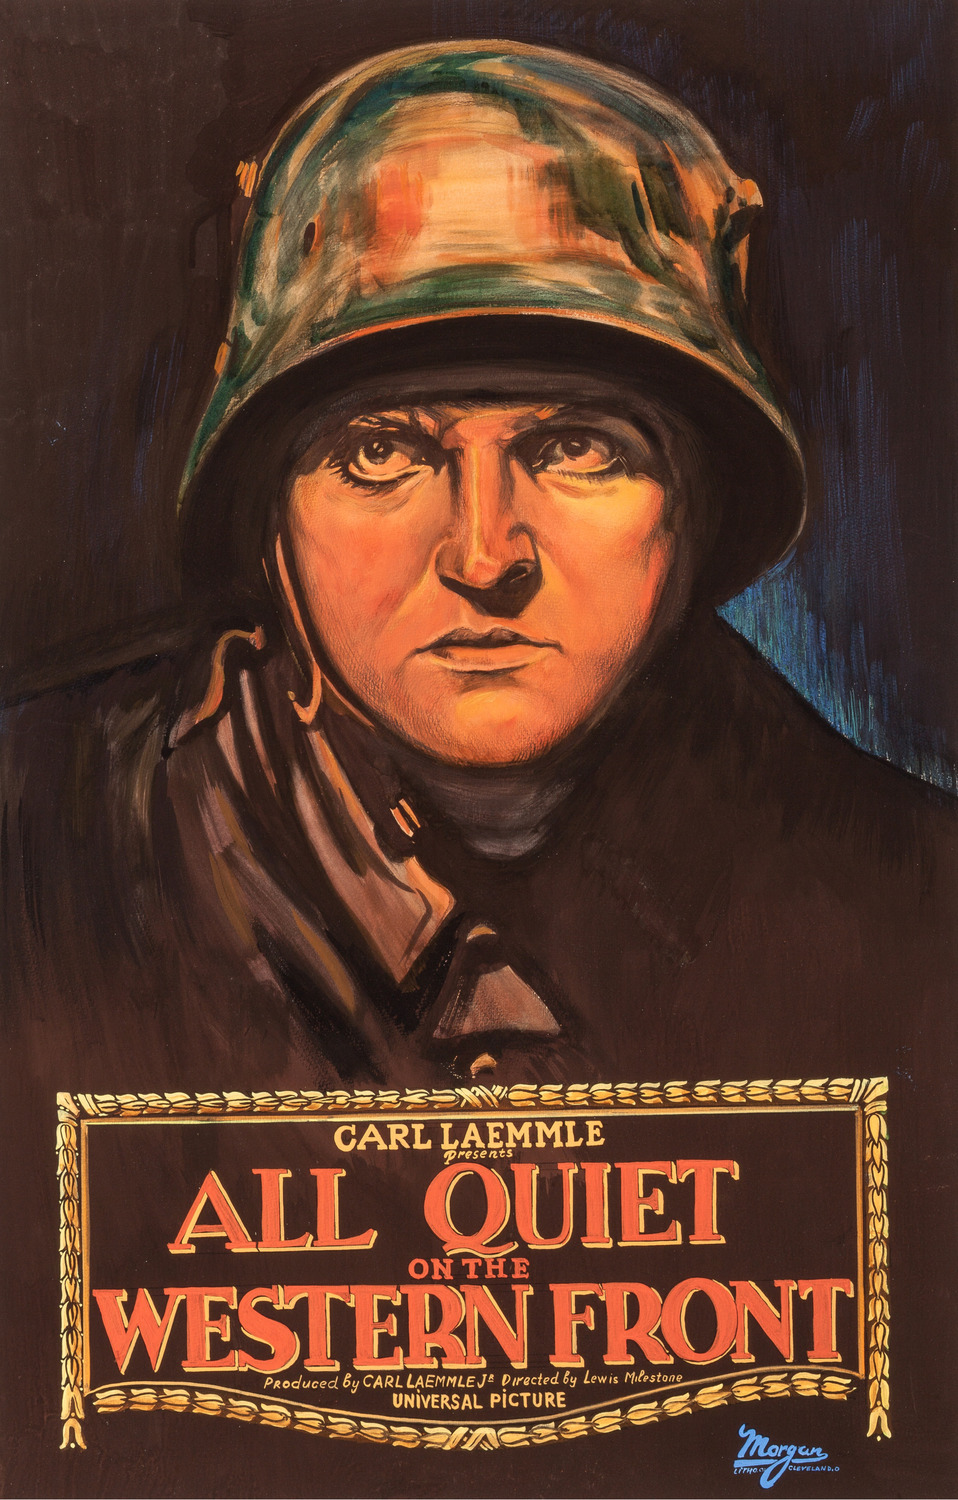 All Quiet on the Western Front (1930 film)